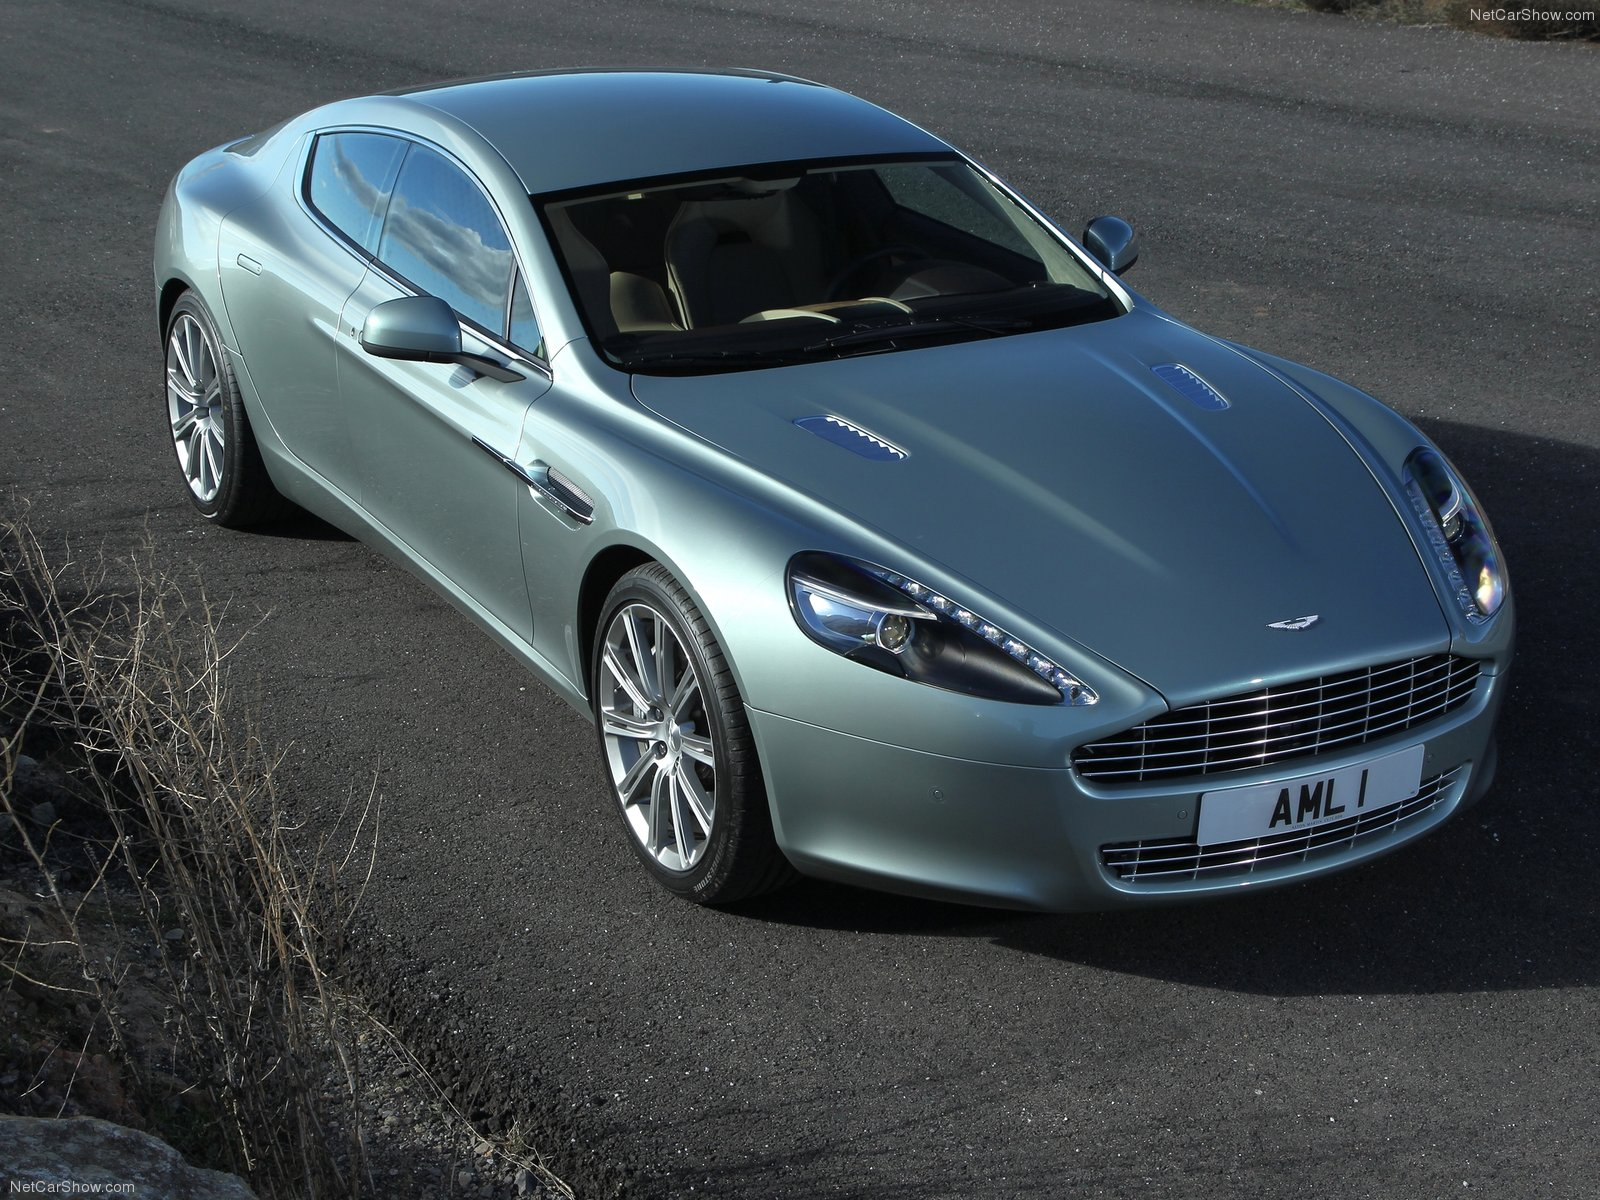 tuning aston martin rapide sedan 2010 online, accessories and